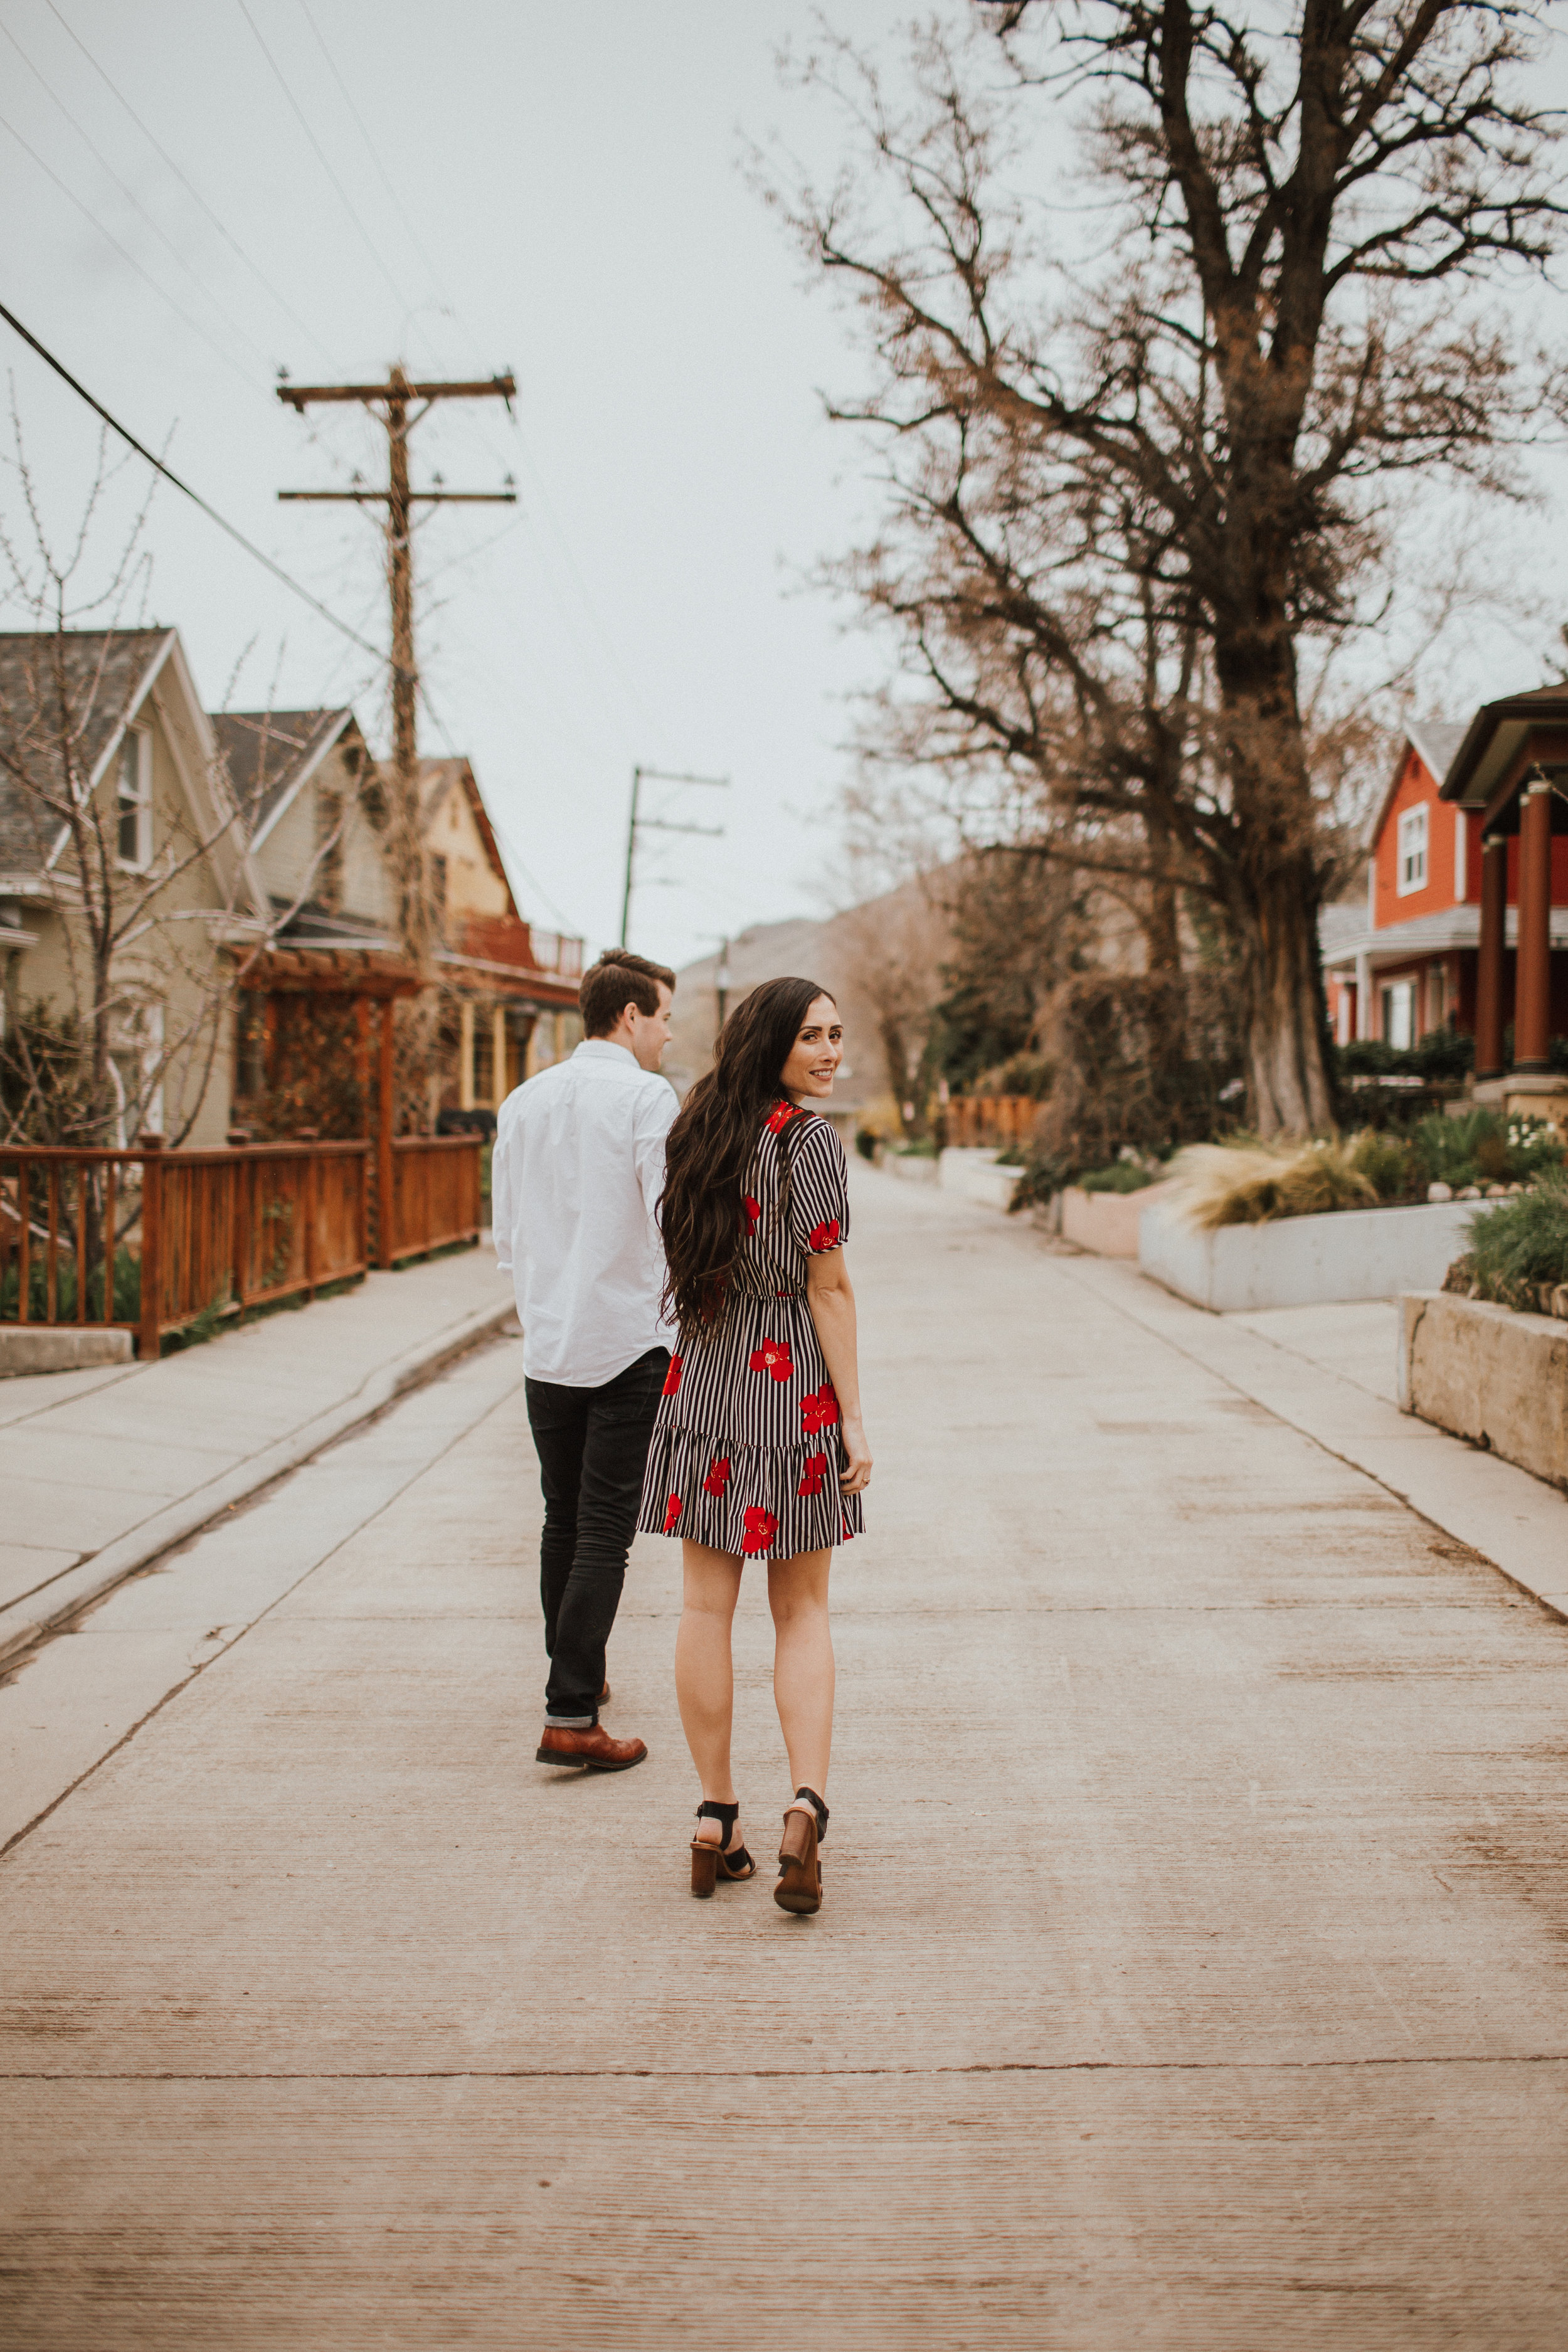 KP+Ryan_Engagments-206.jpg